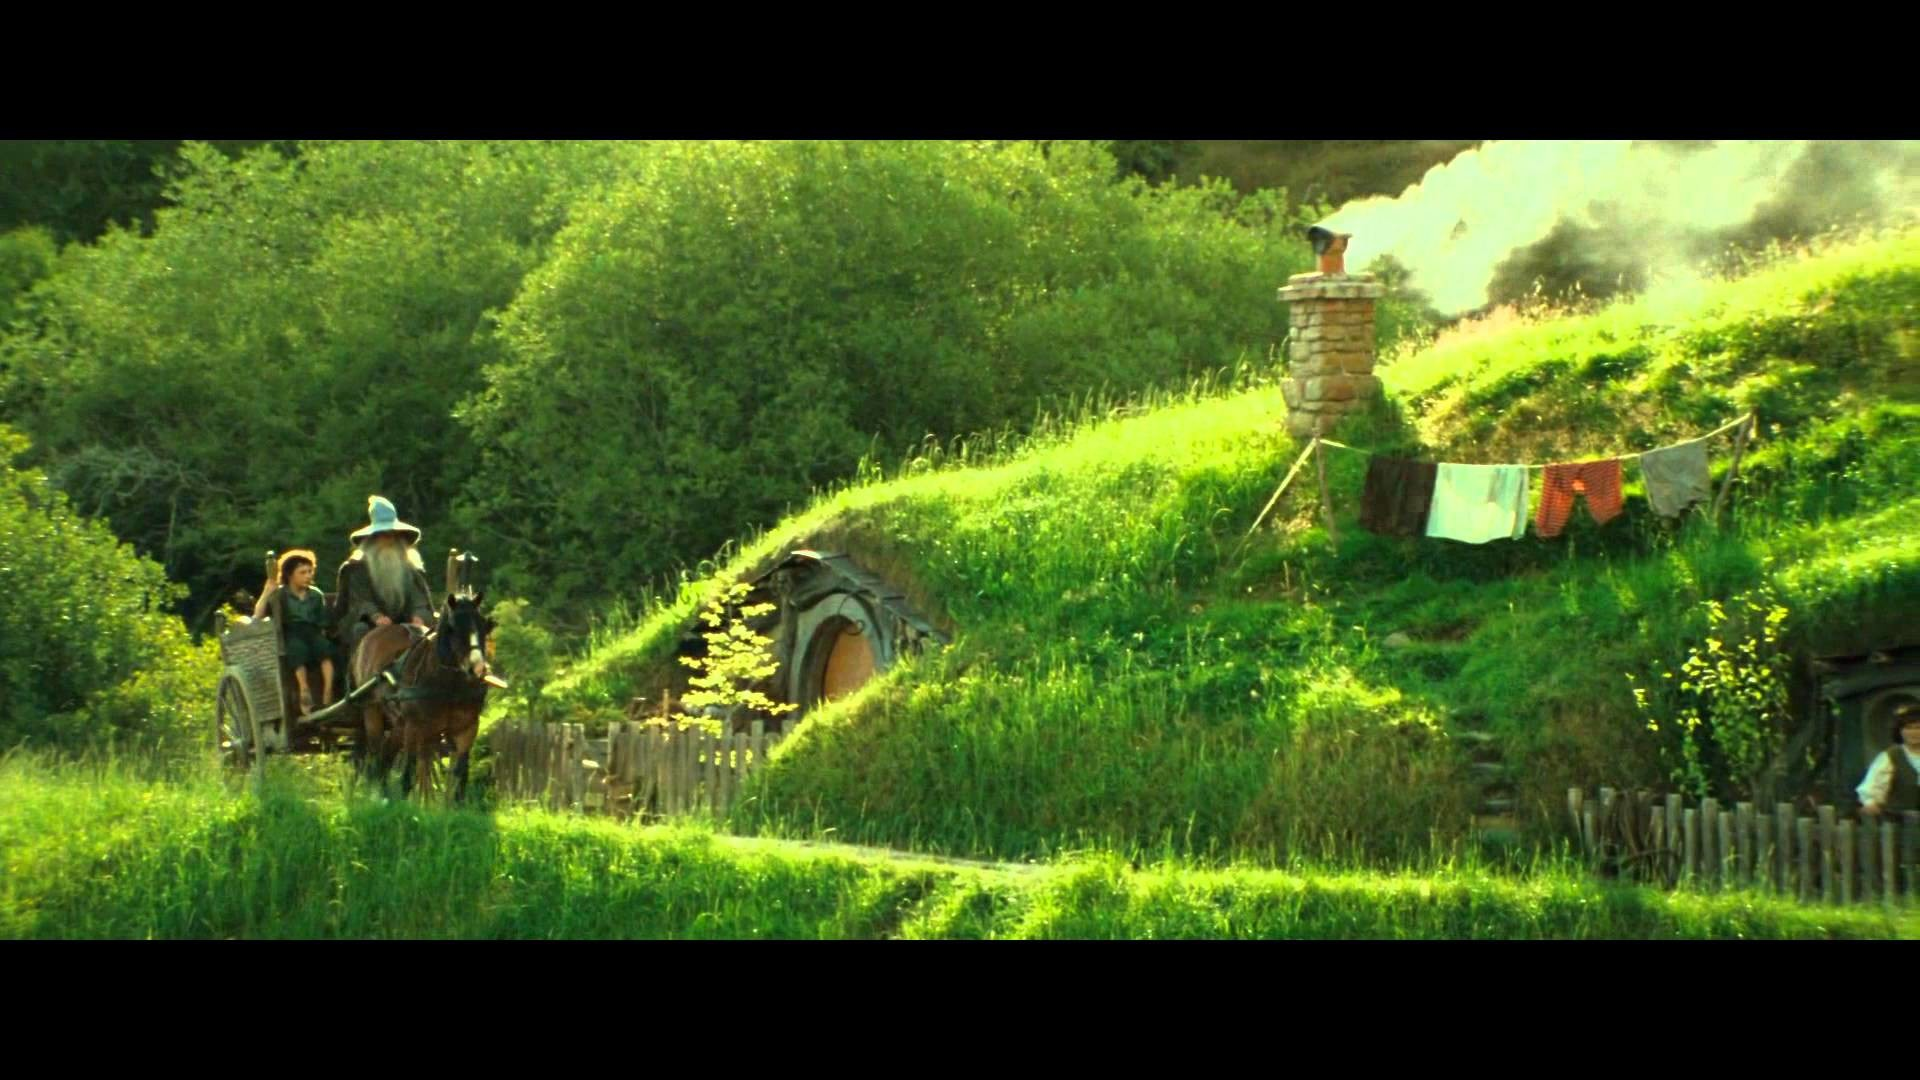 LOTR The Fellowship of the Ring – Extended Edition – The Shire